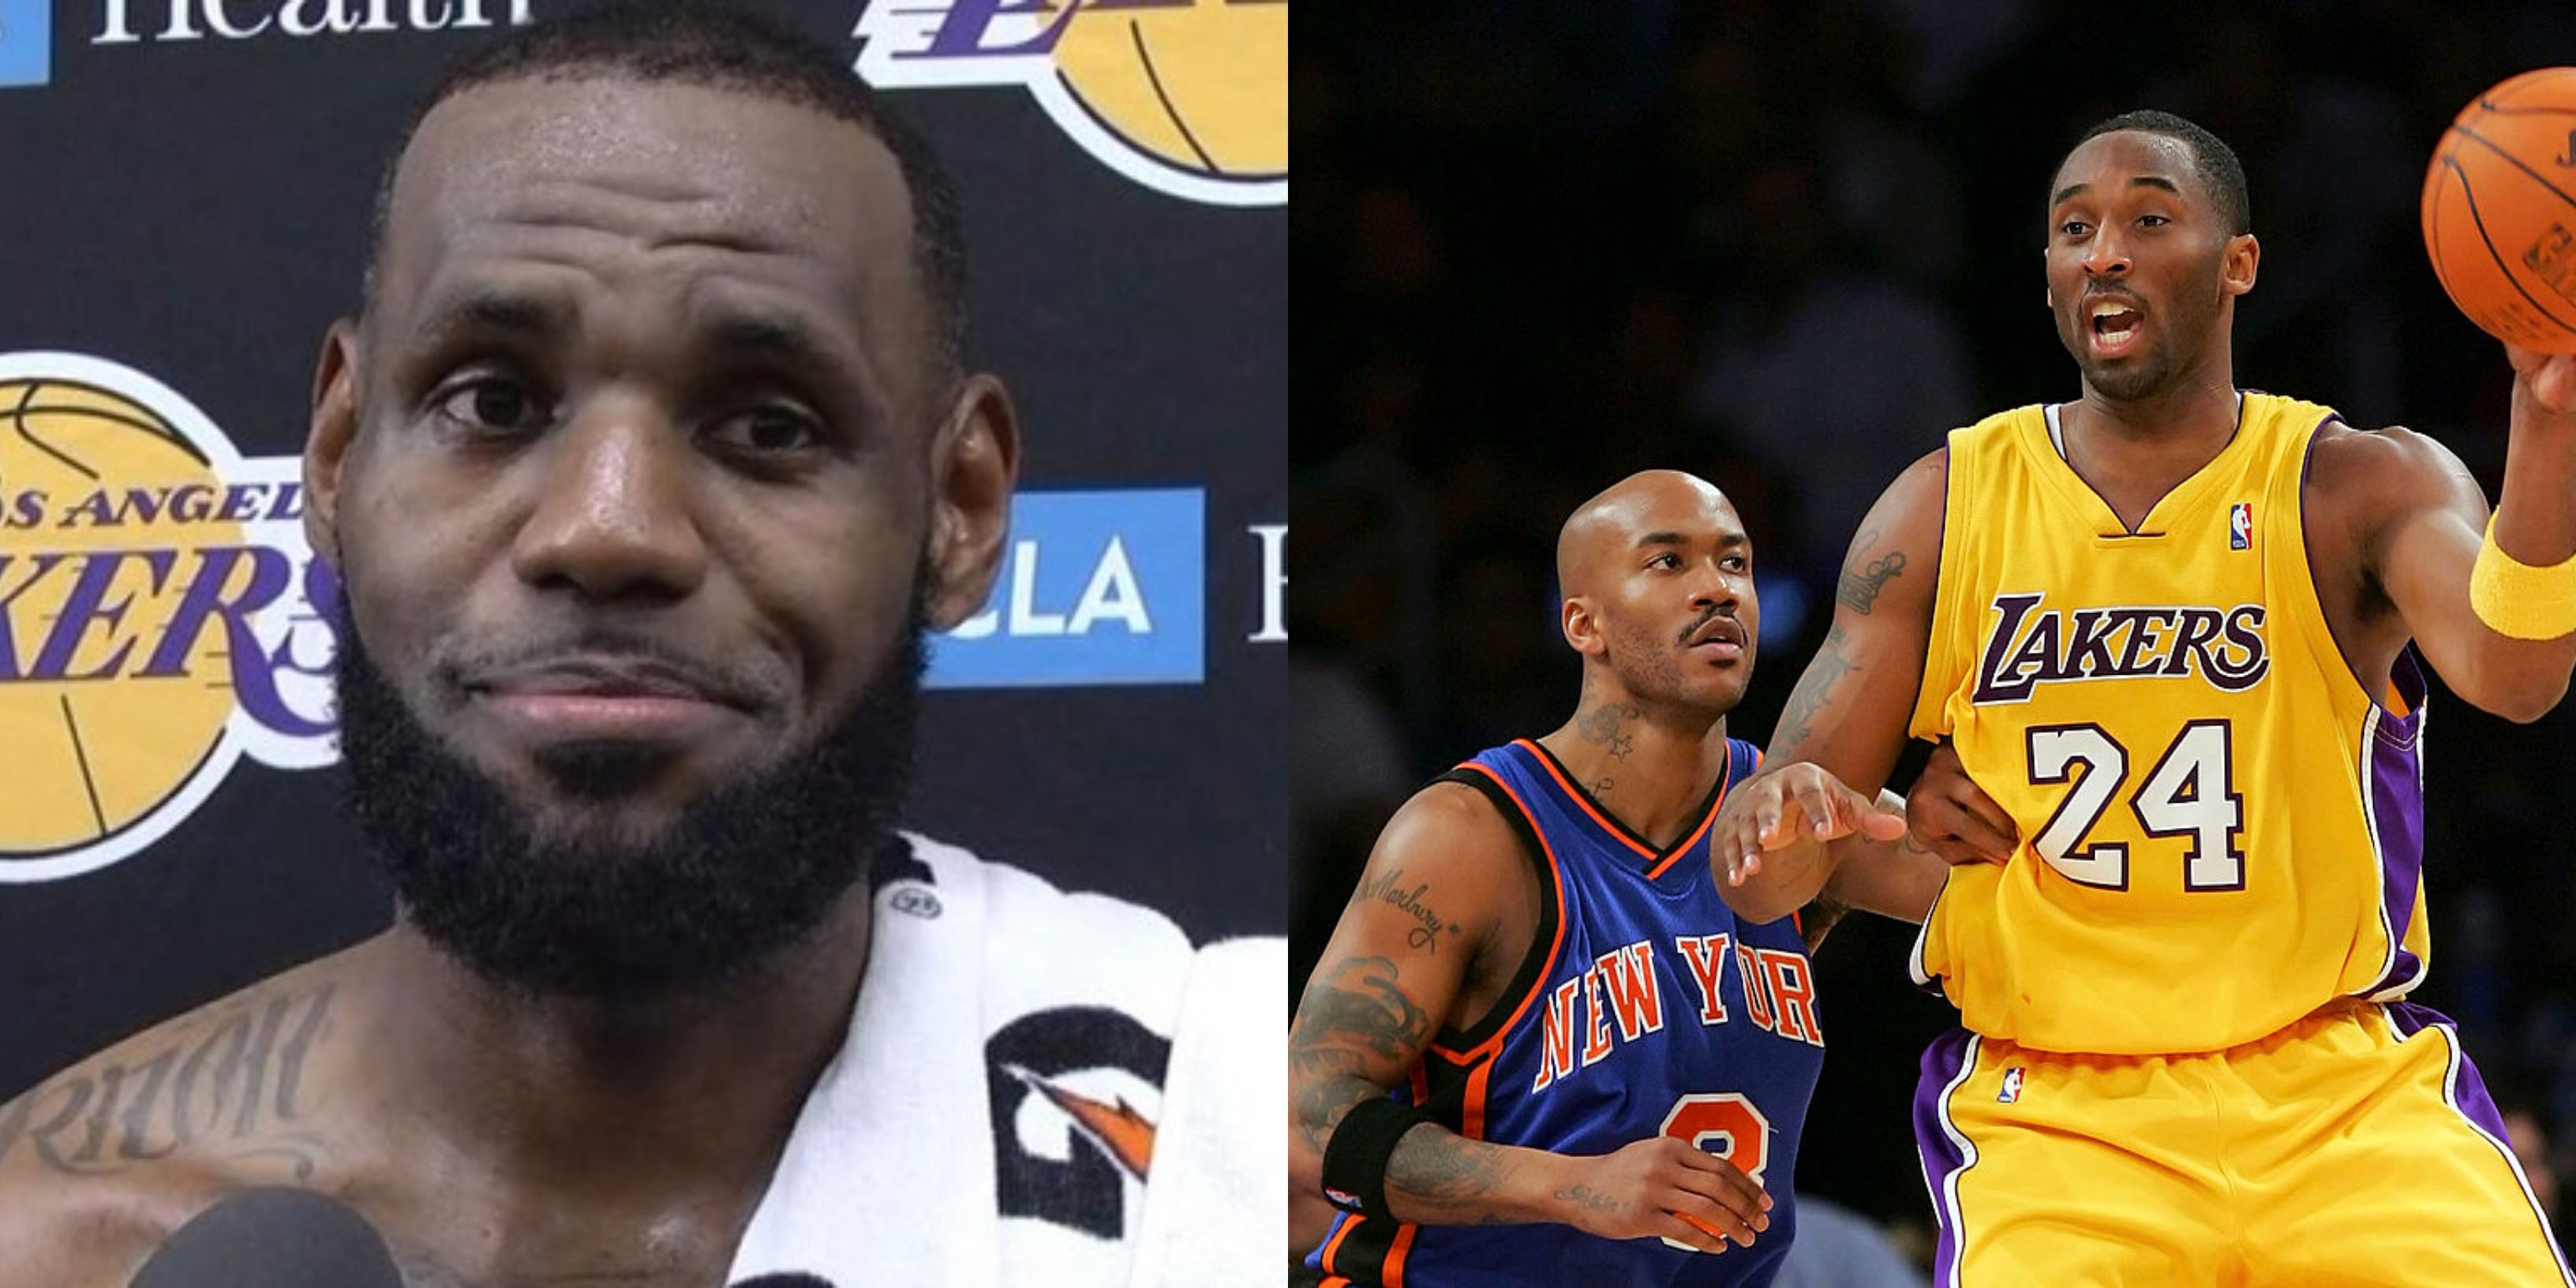 Stephon Marbury Says LeBron 'Not A Real